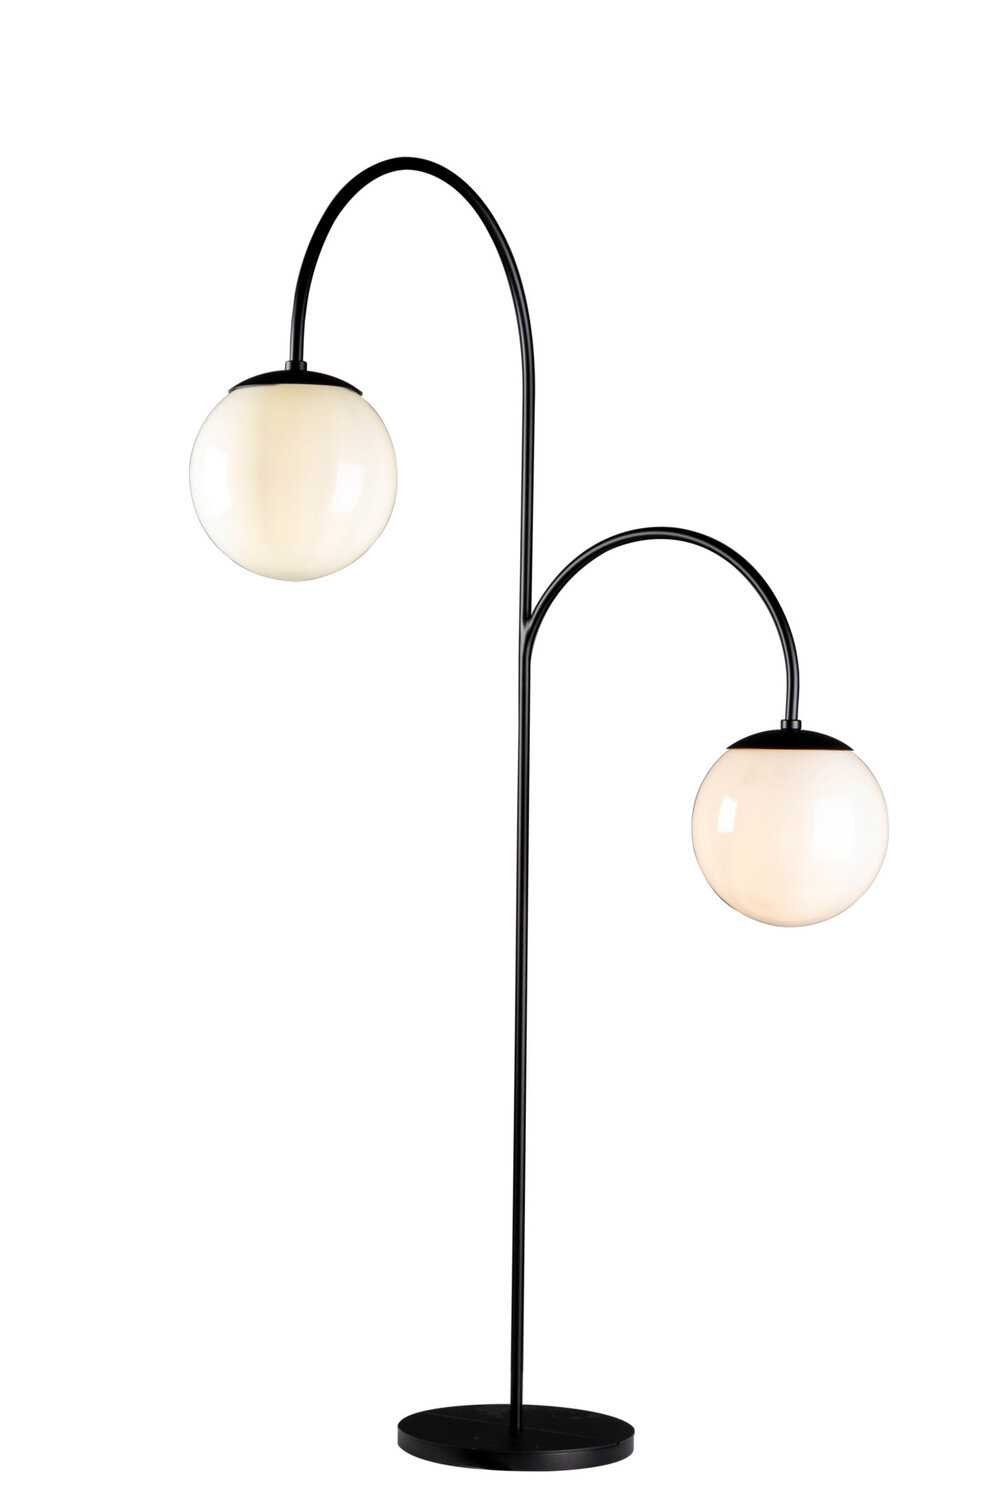 A whimsical floor lamp designed for Chicago's new Hayden Hall nods equally to vintage and modern style. Custom design #DFL-2-093-19A-C